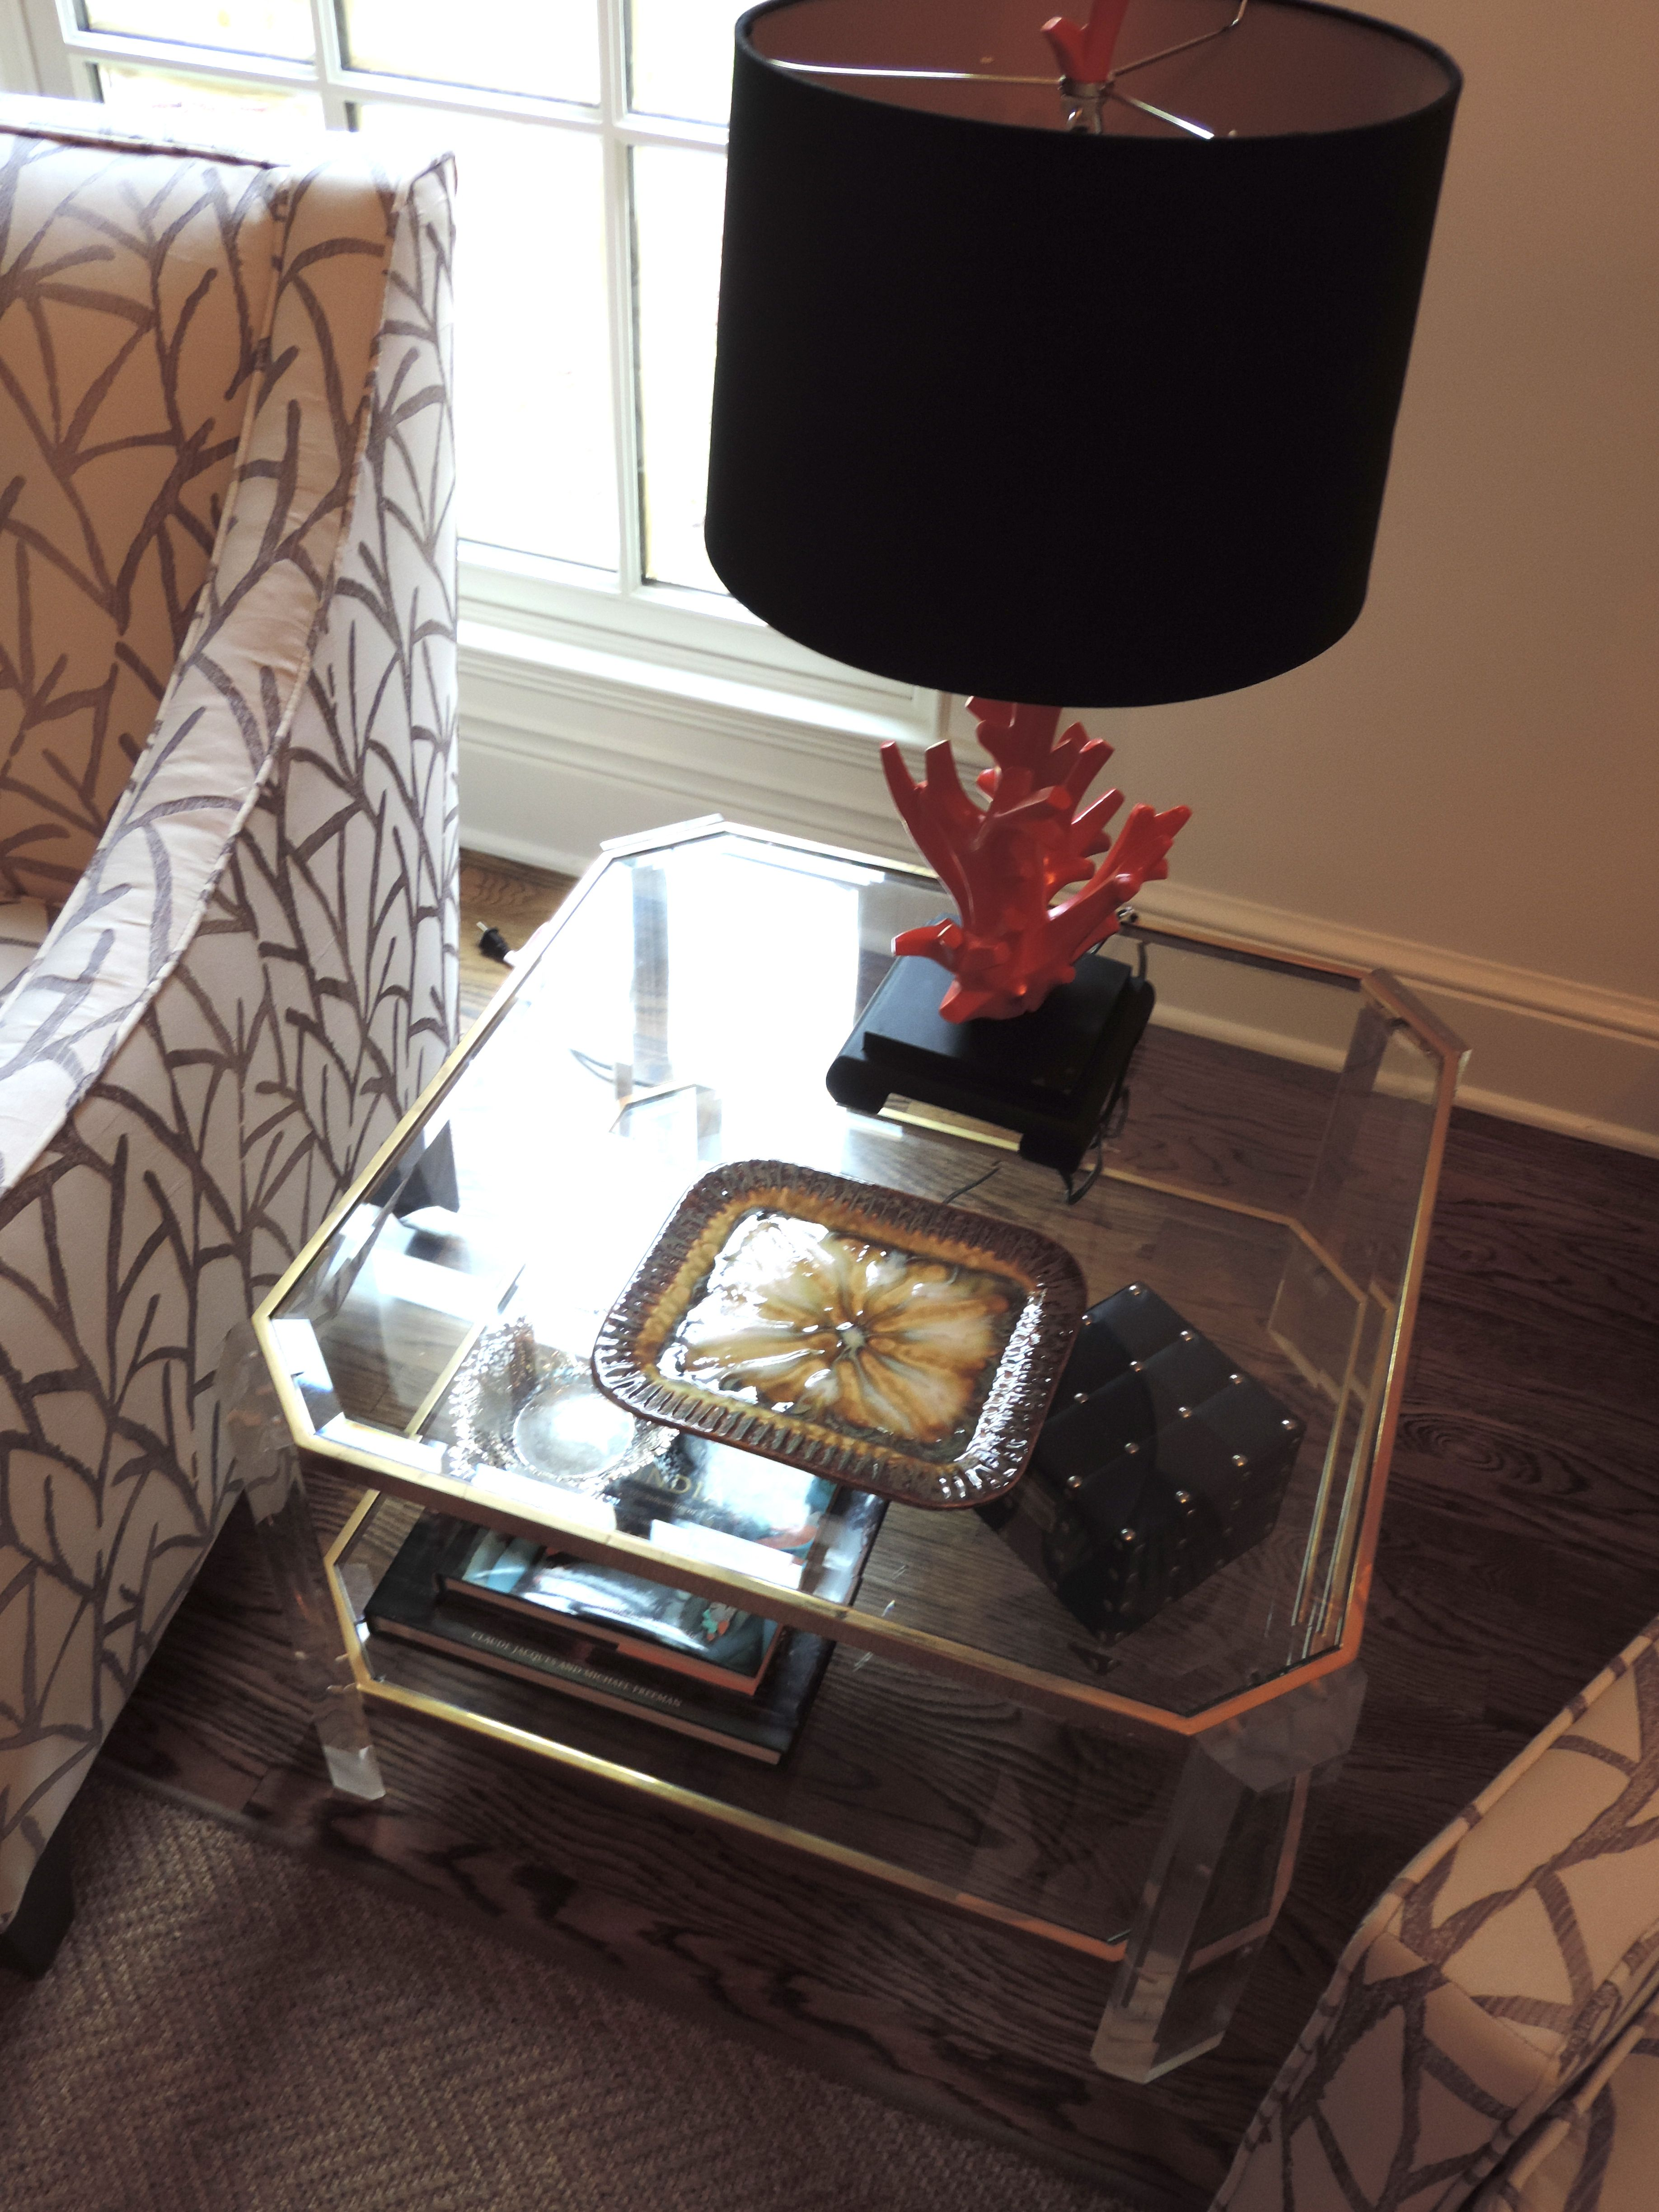 Great This Coral Lamp From HomeGoods Adds A Pop Of Color To This Vintage Lucite  Table. I Love Mixing The Old With The New!